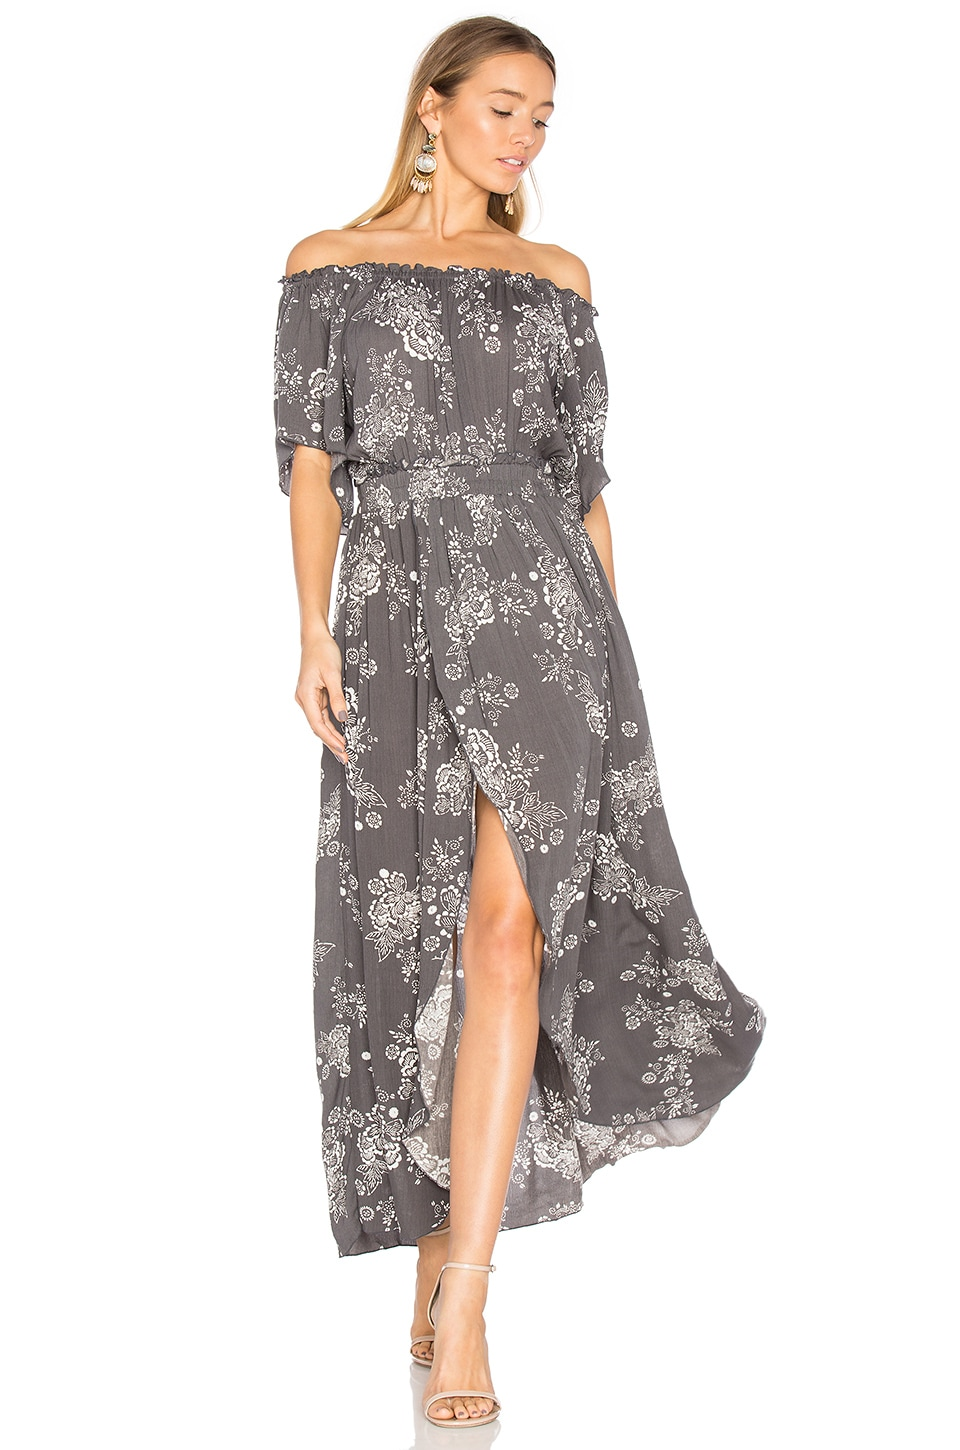 Steele Cooper Maxi Dress in Dark Oriental